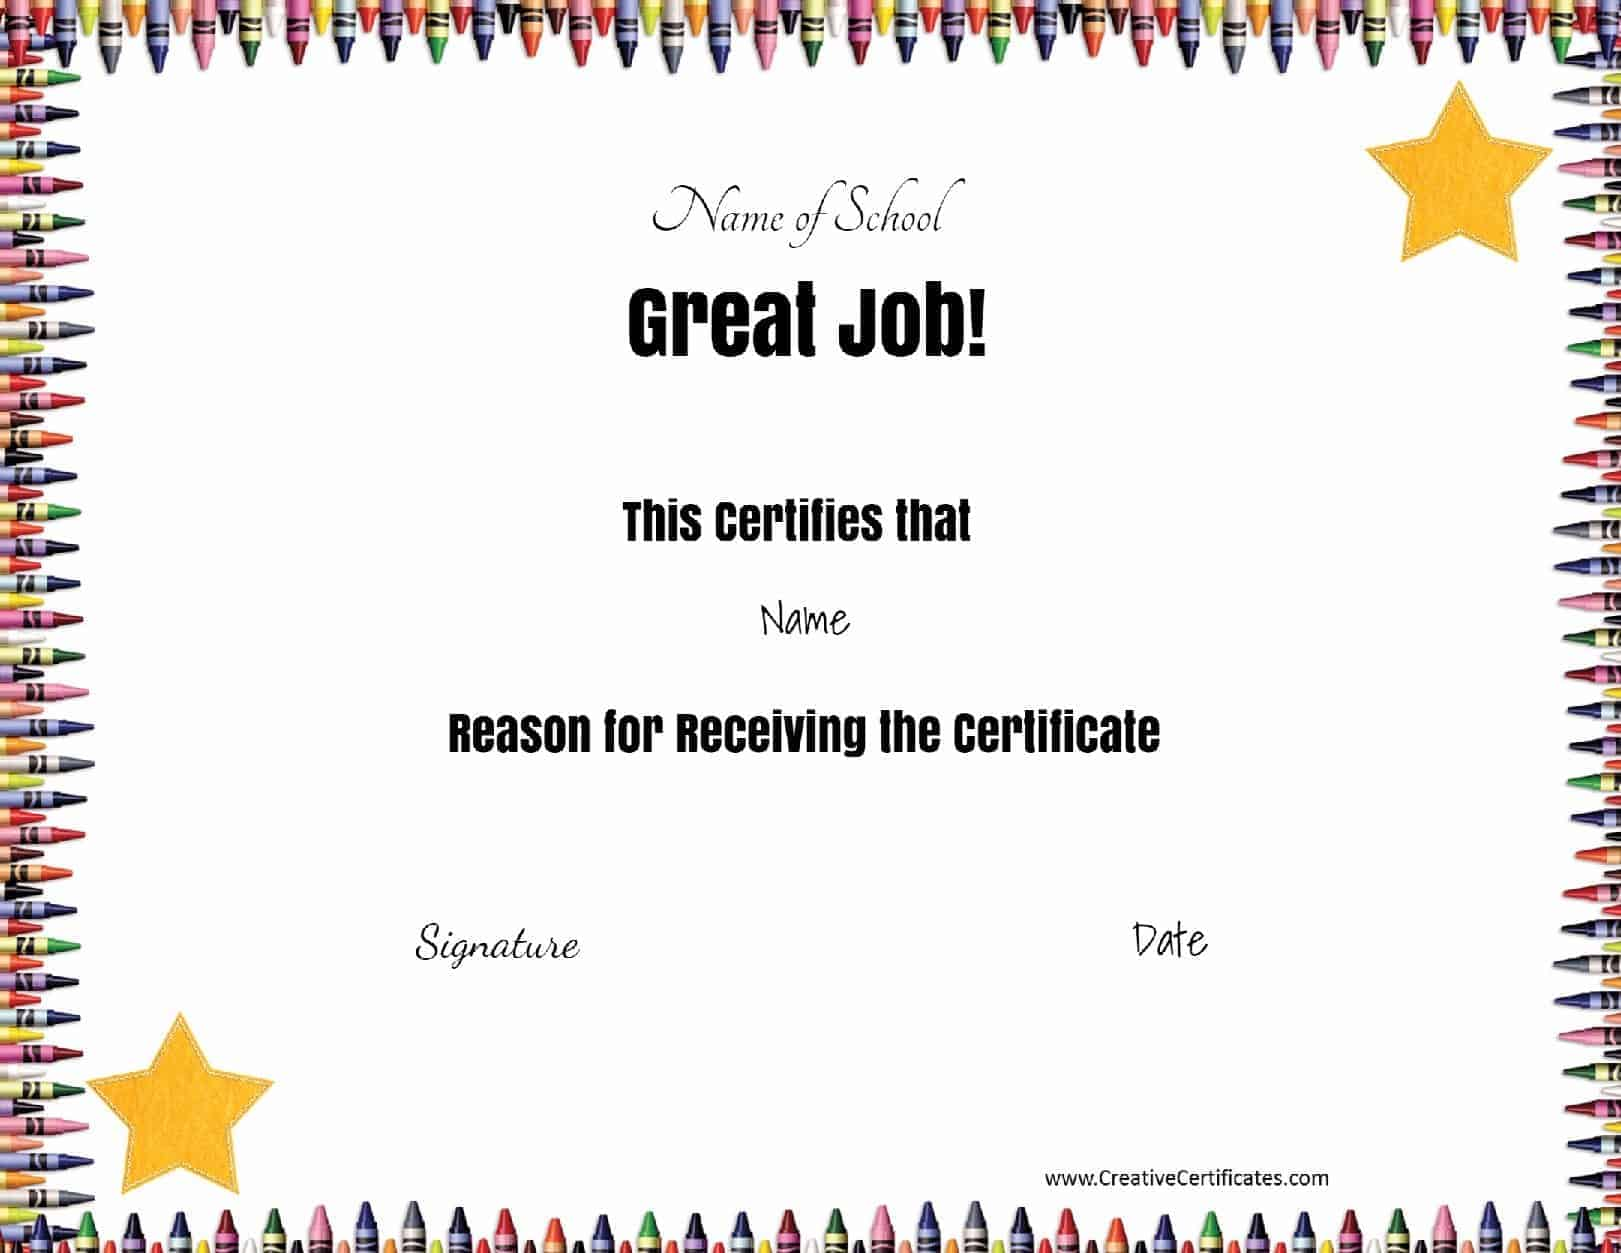 Free school certificates awards certificate template with crayon border xflitez Choice Image